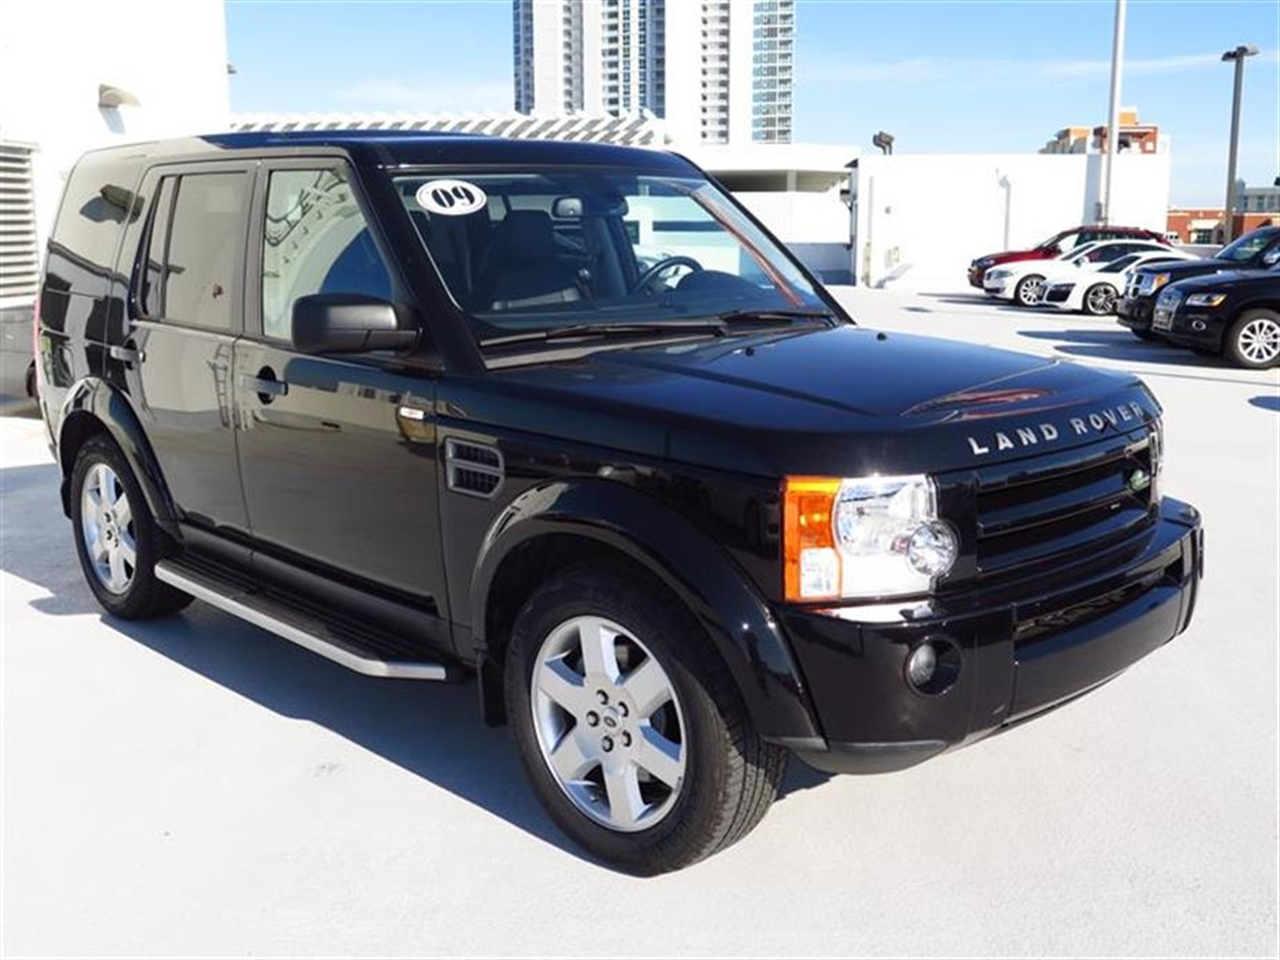 2009 LAND ROVER LR3 4WD 4dr V8 23679 miles Noble Finish interior accents 6535 split folding rear